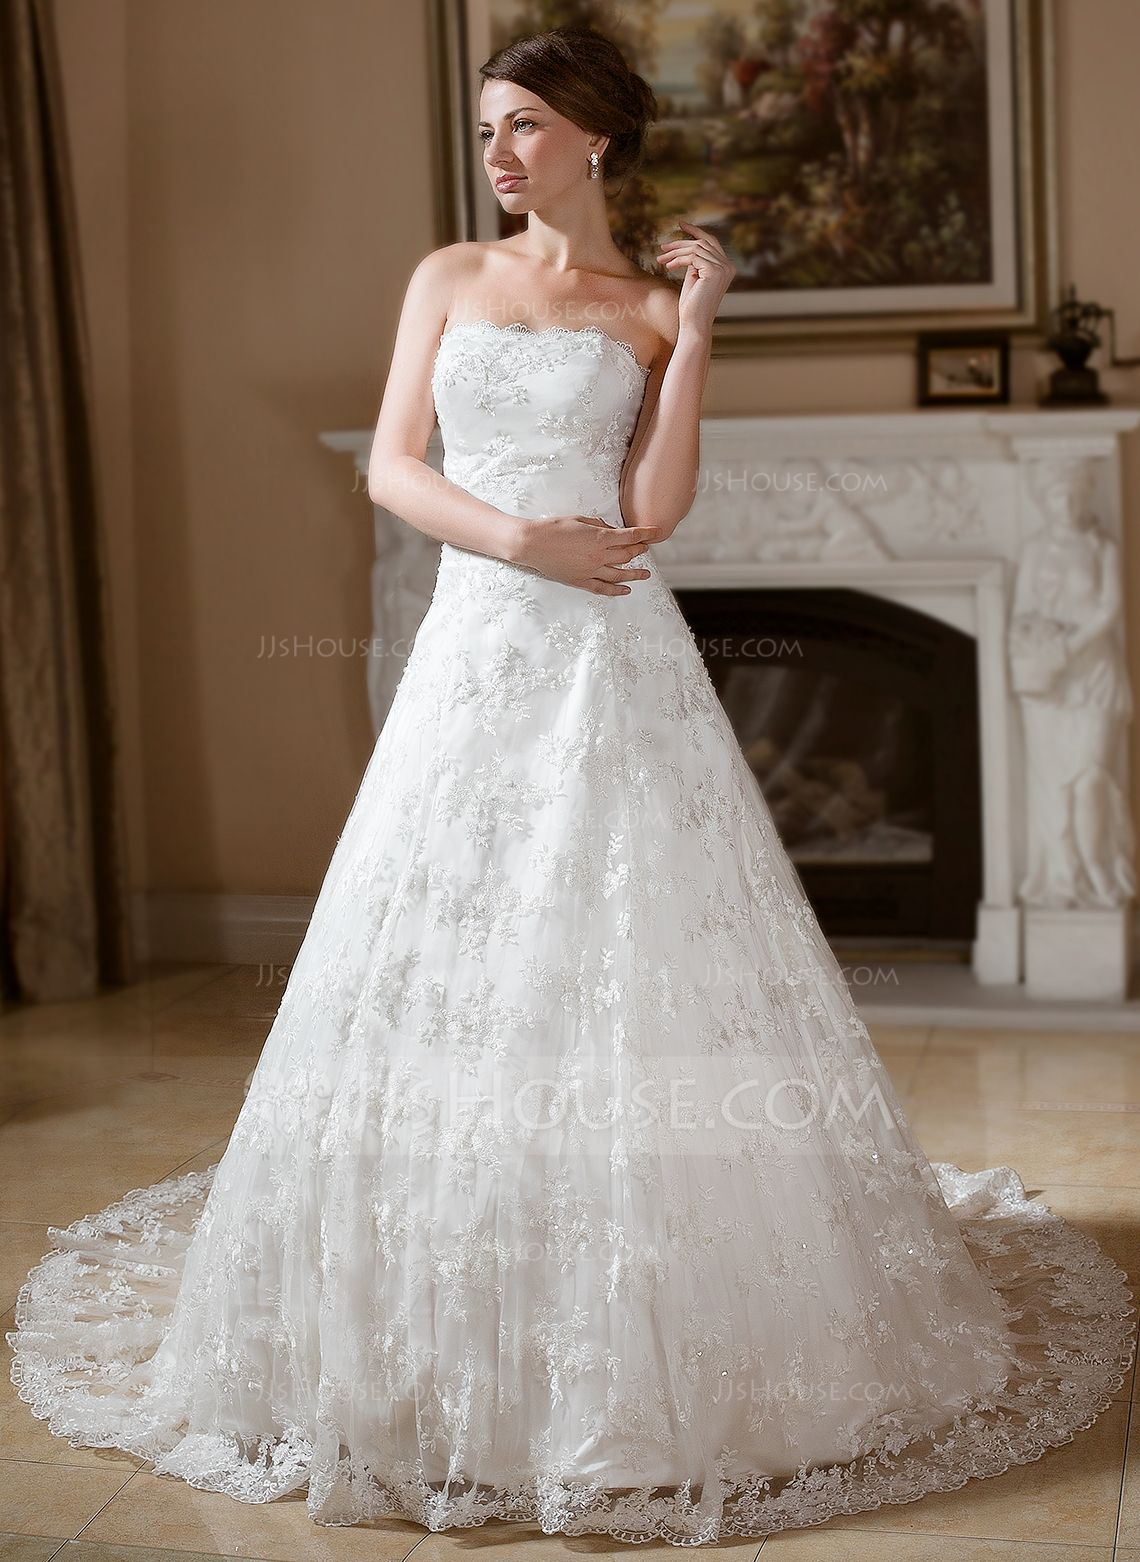 Ballgown strapless chapel train lace wedding dress with beading